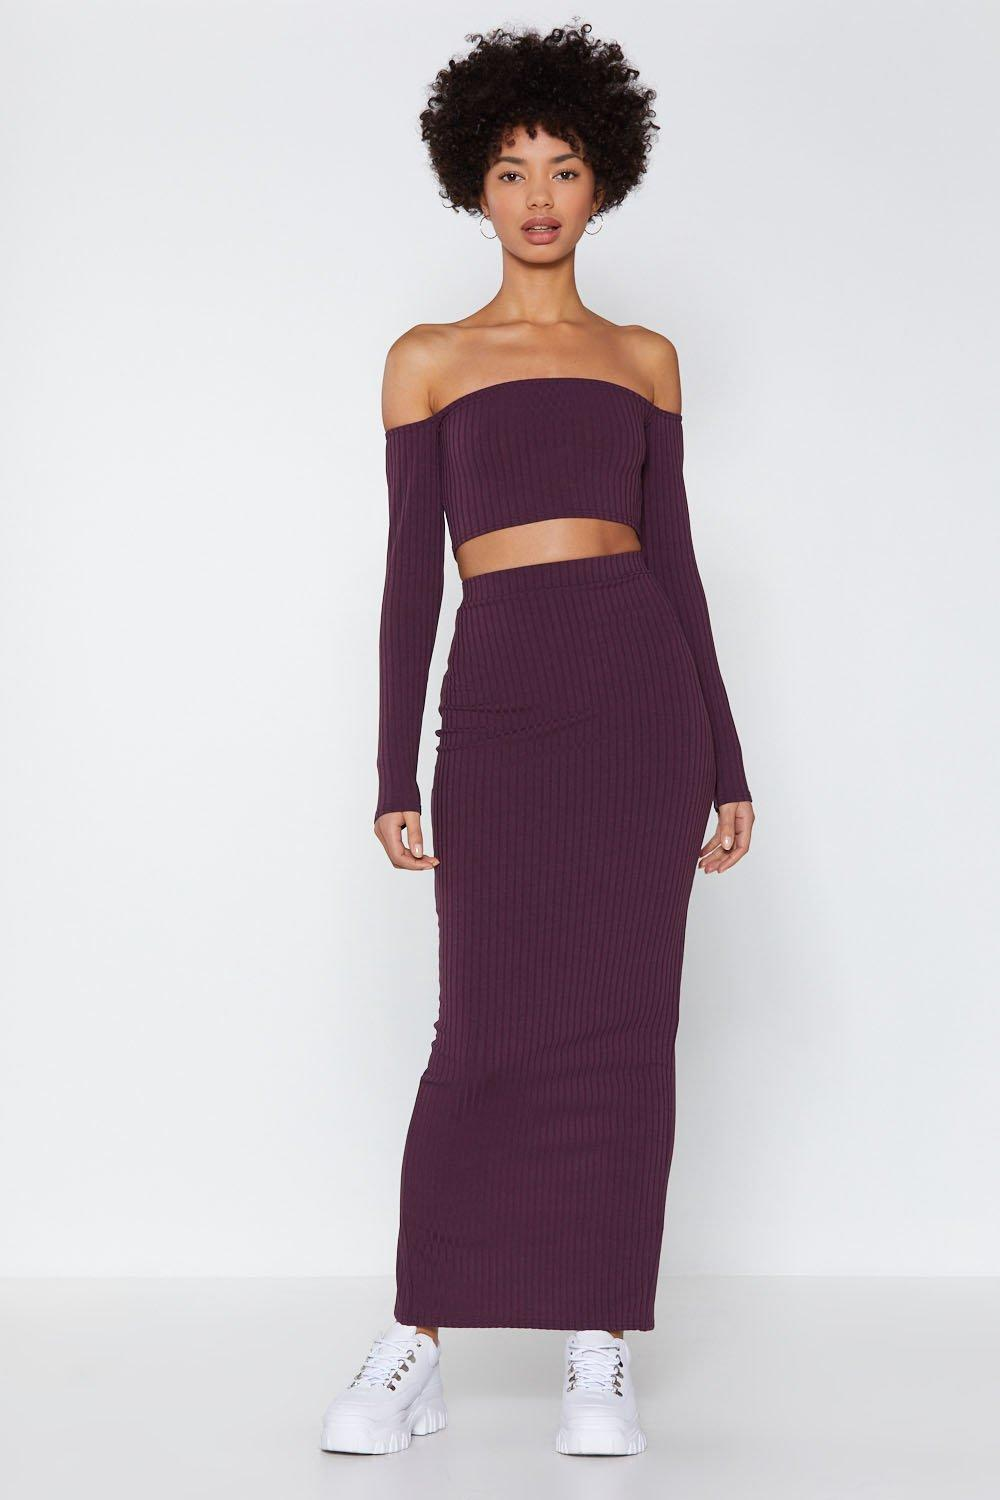 c42f87fb8d17 Lyst - Nasty Gal Our Best Off-the-shoulder Top And Midi Skirt Set in ...